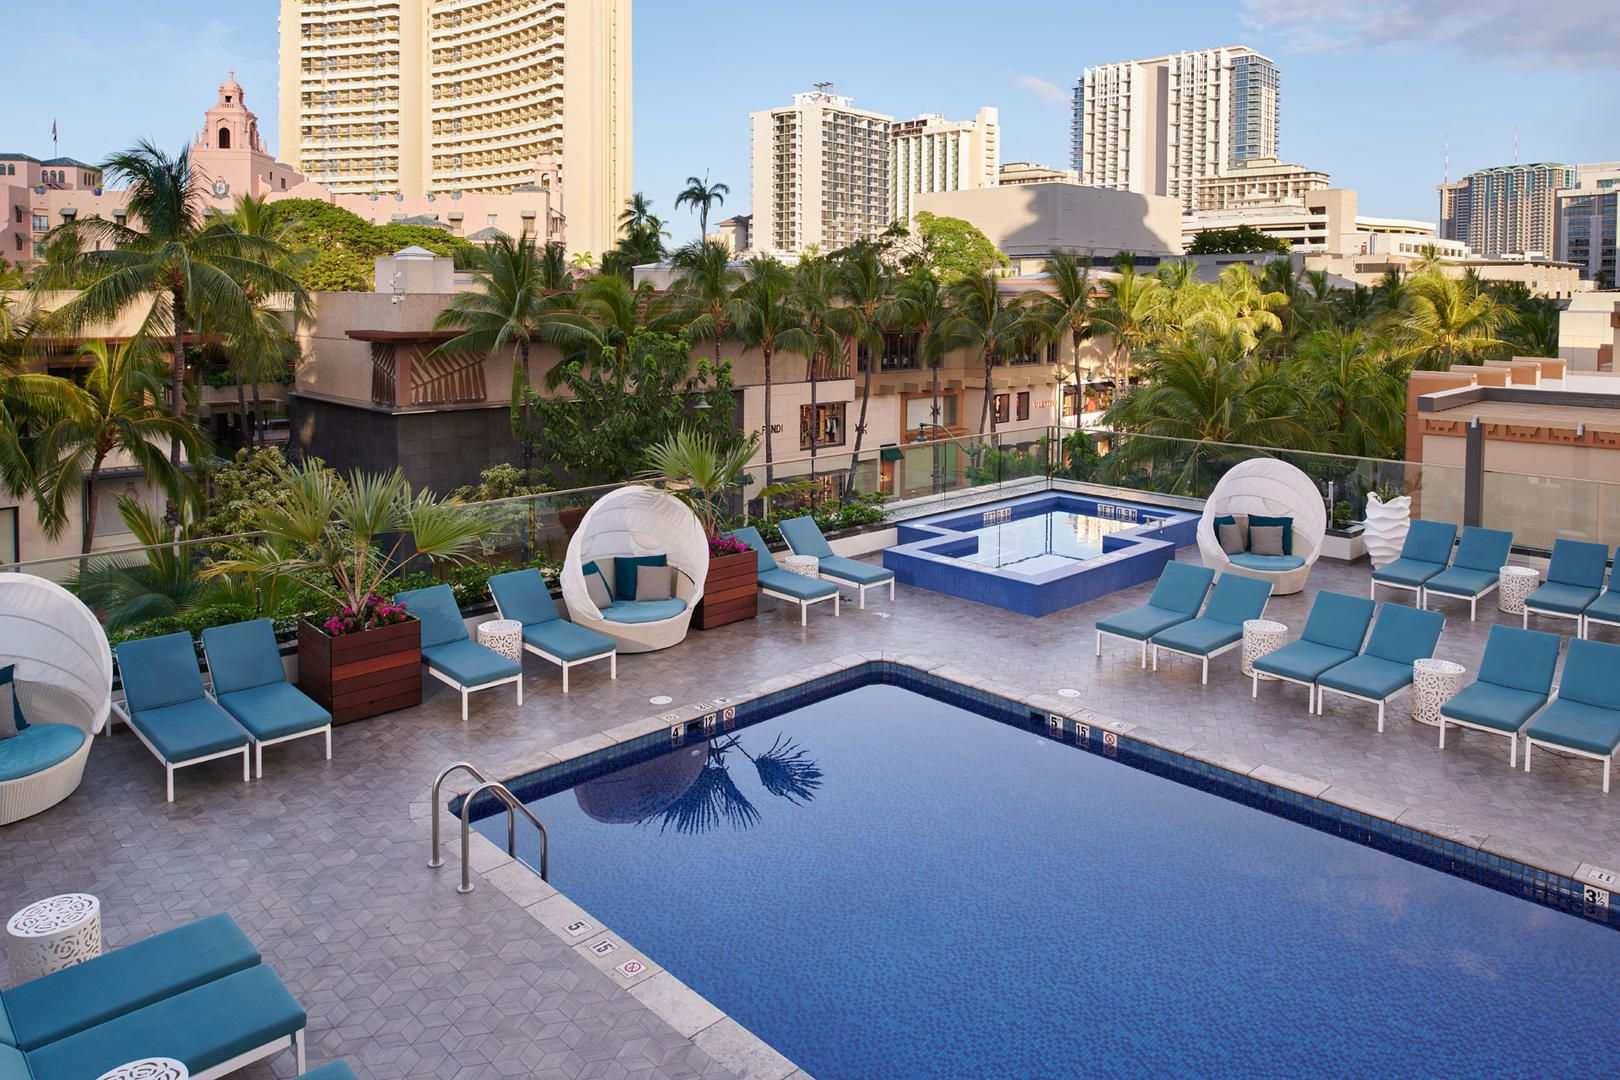 Relax By The Pool In A Sunbed When Staying At The Waikiki